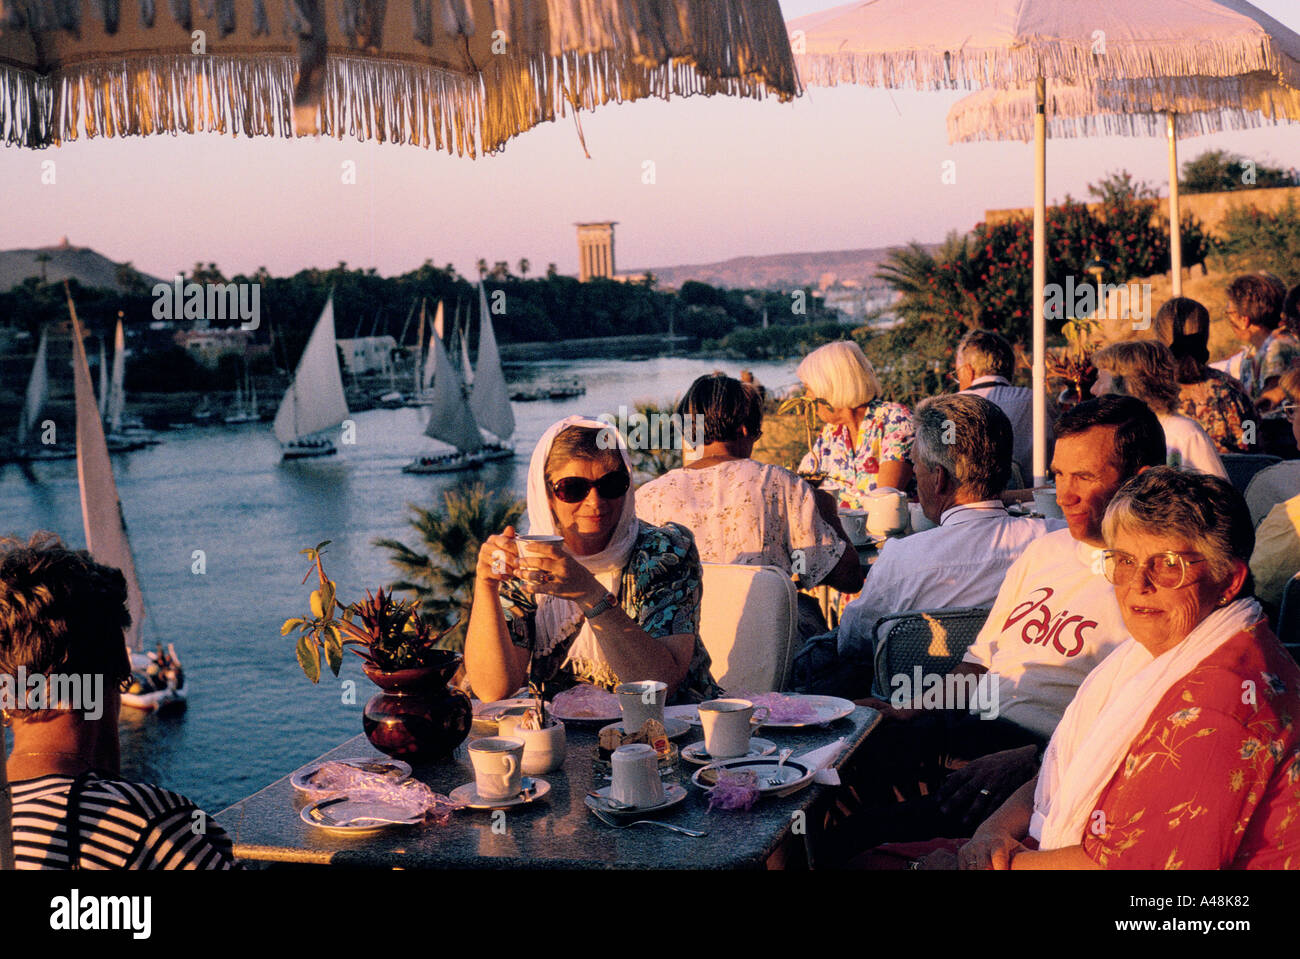 Tourist having afternoon tea on the terrace of The Old Cataracts Hotel over looking th River Nile at Aswan - Stock Image